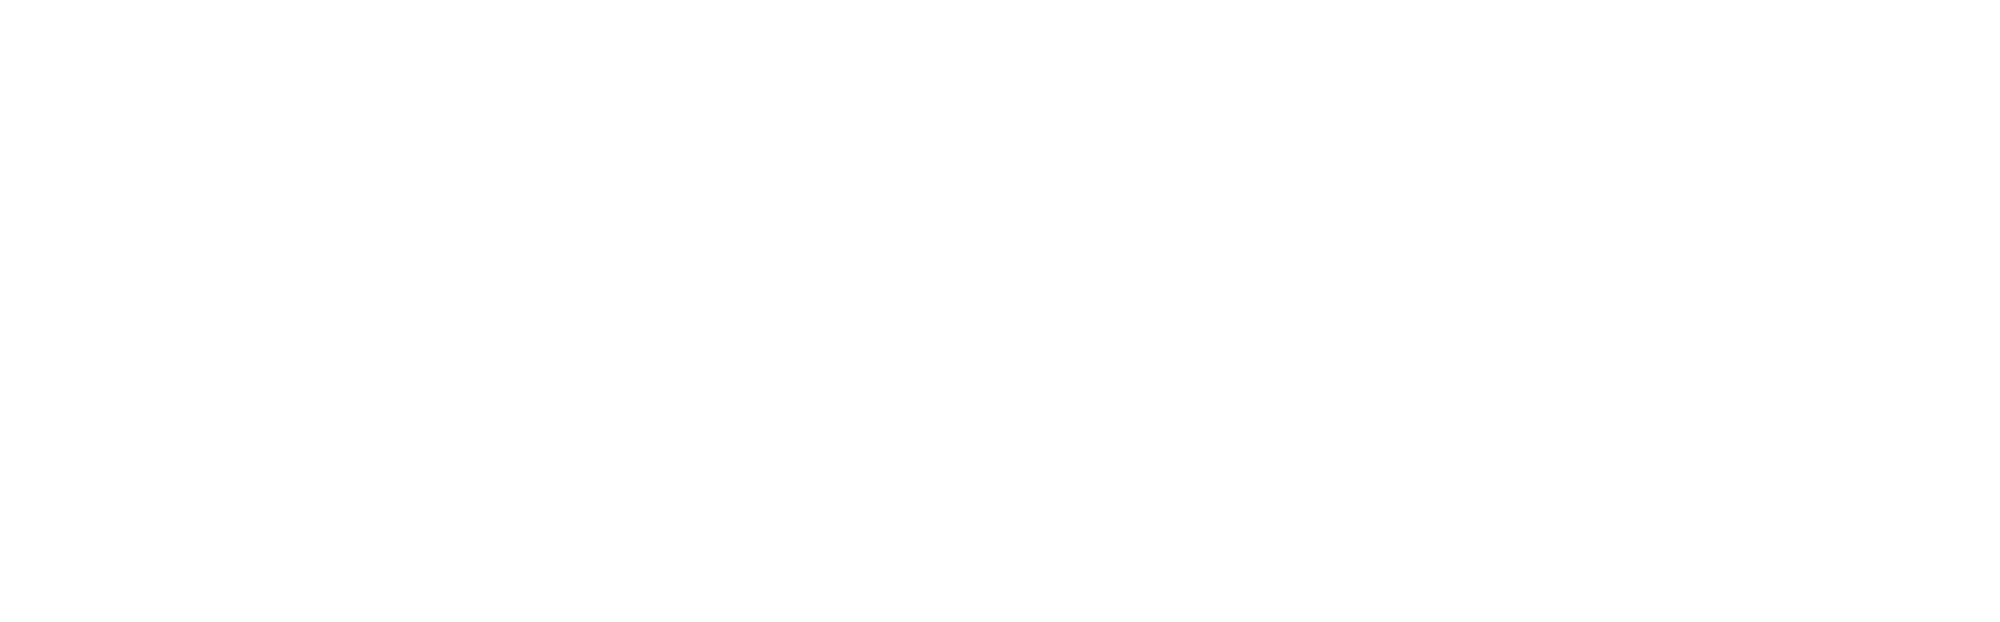 clarion food and beverage